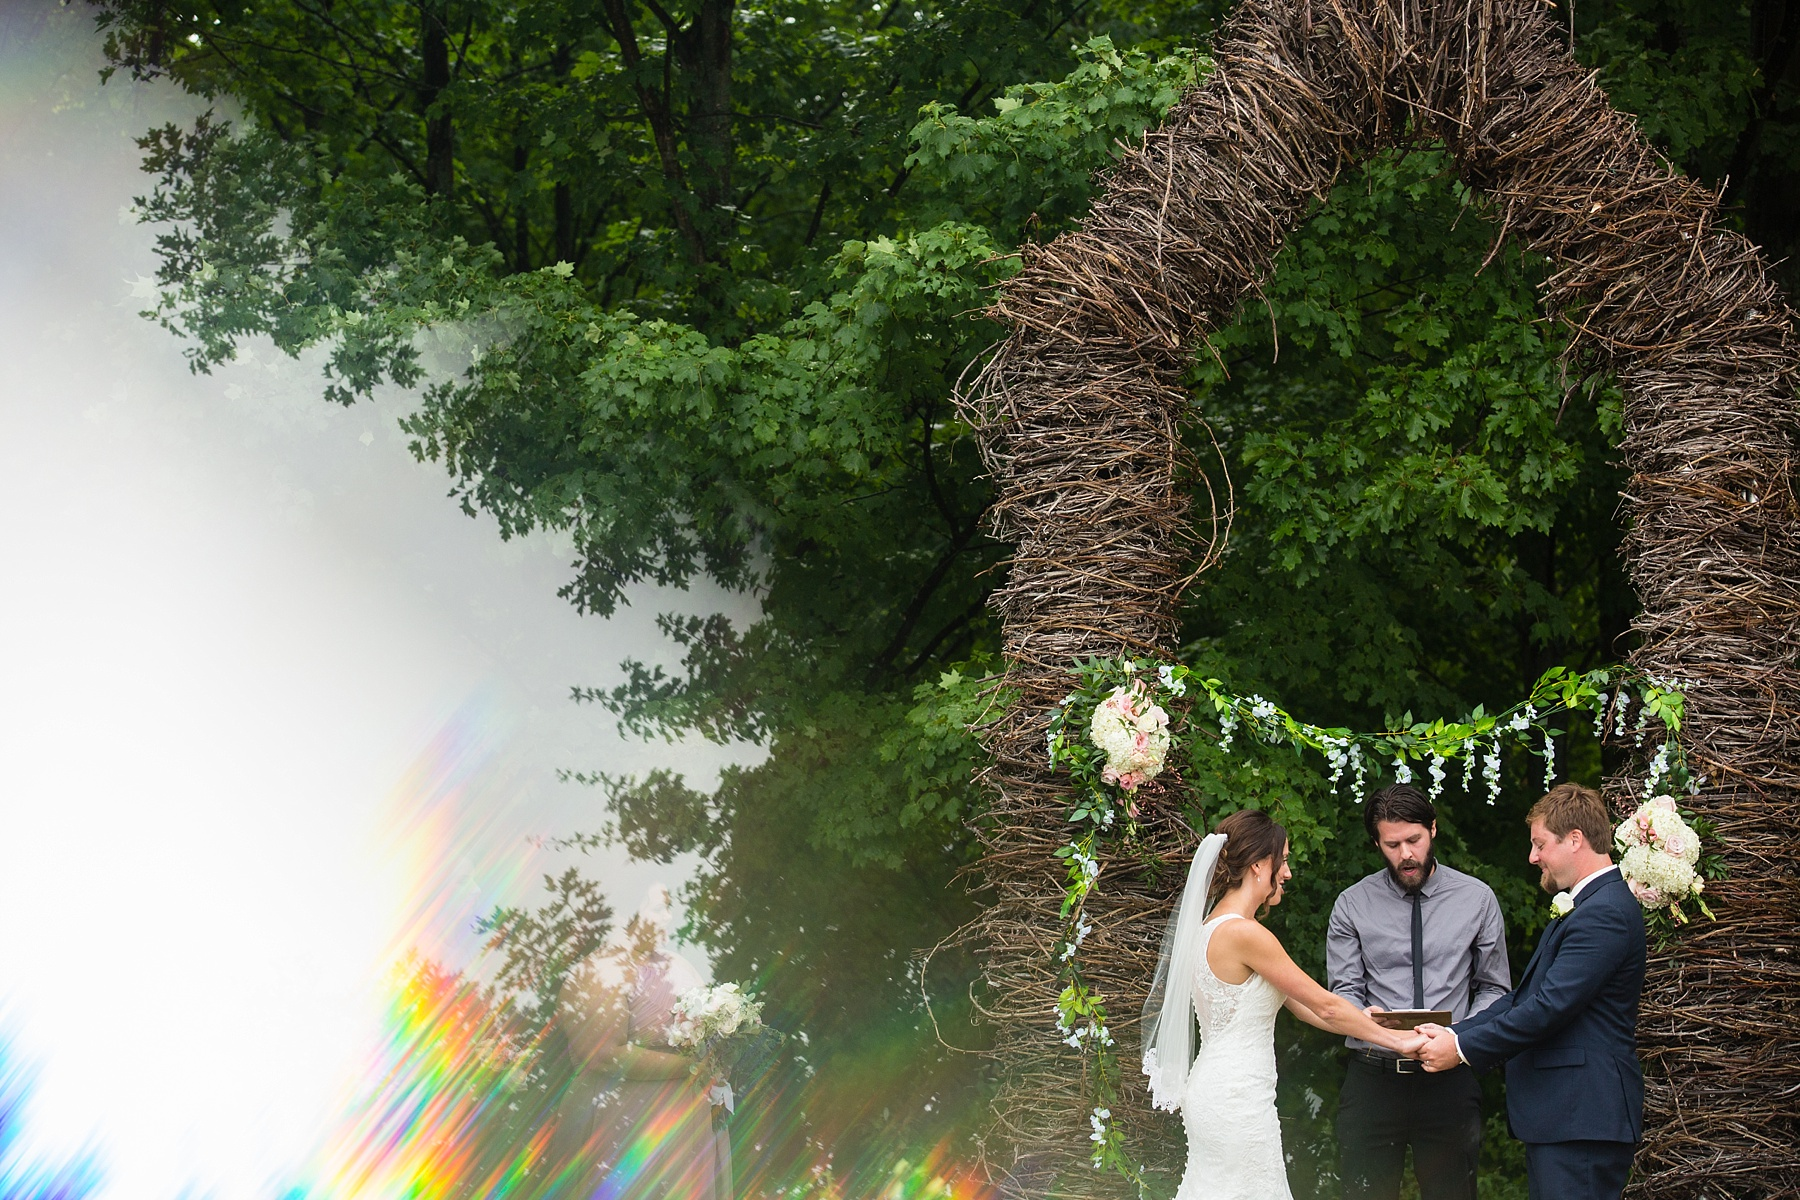 Brandon_Shafer_Photography_Elizabeth_Scott_Traverse_City_Wedding_0035.jpg